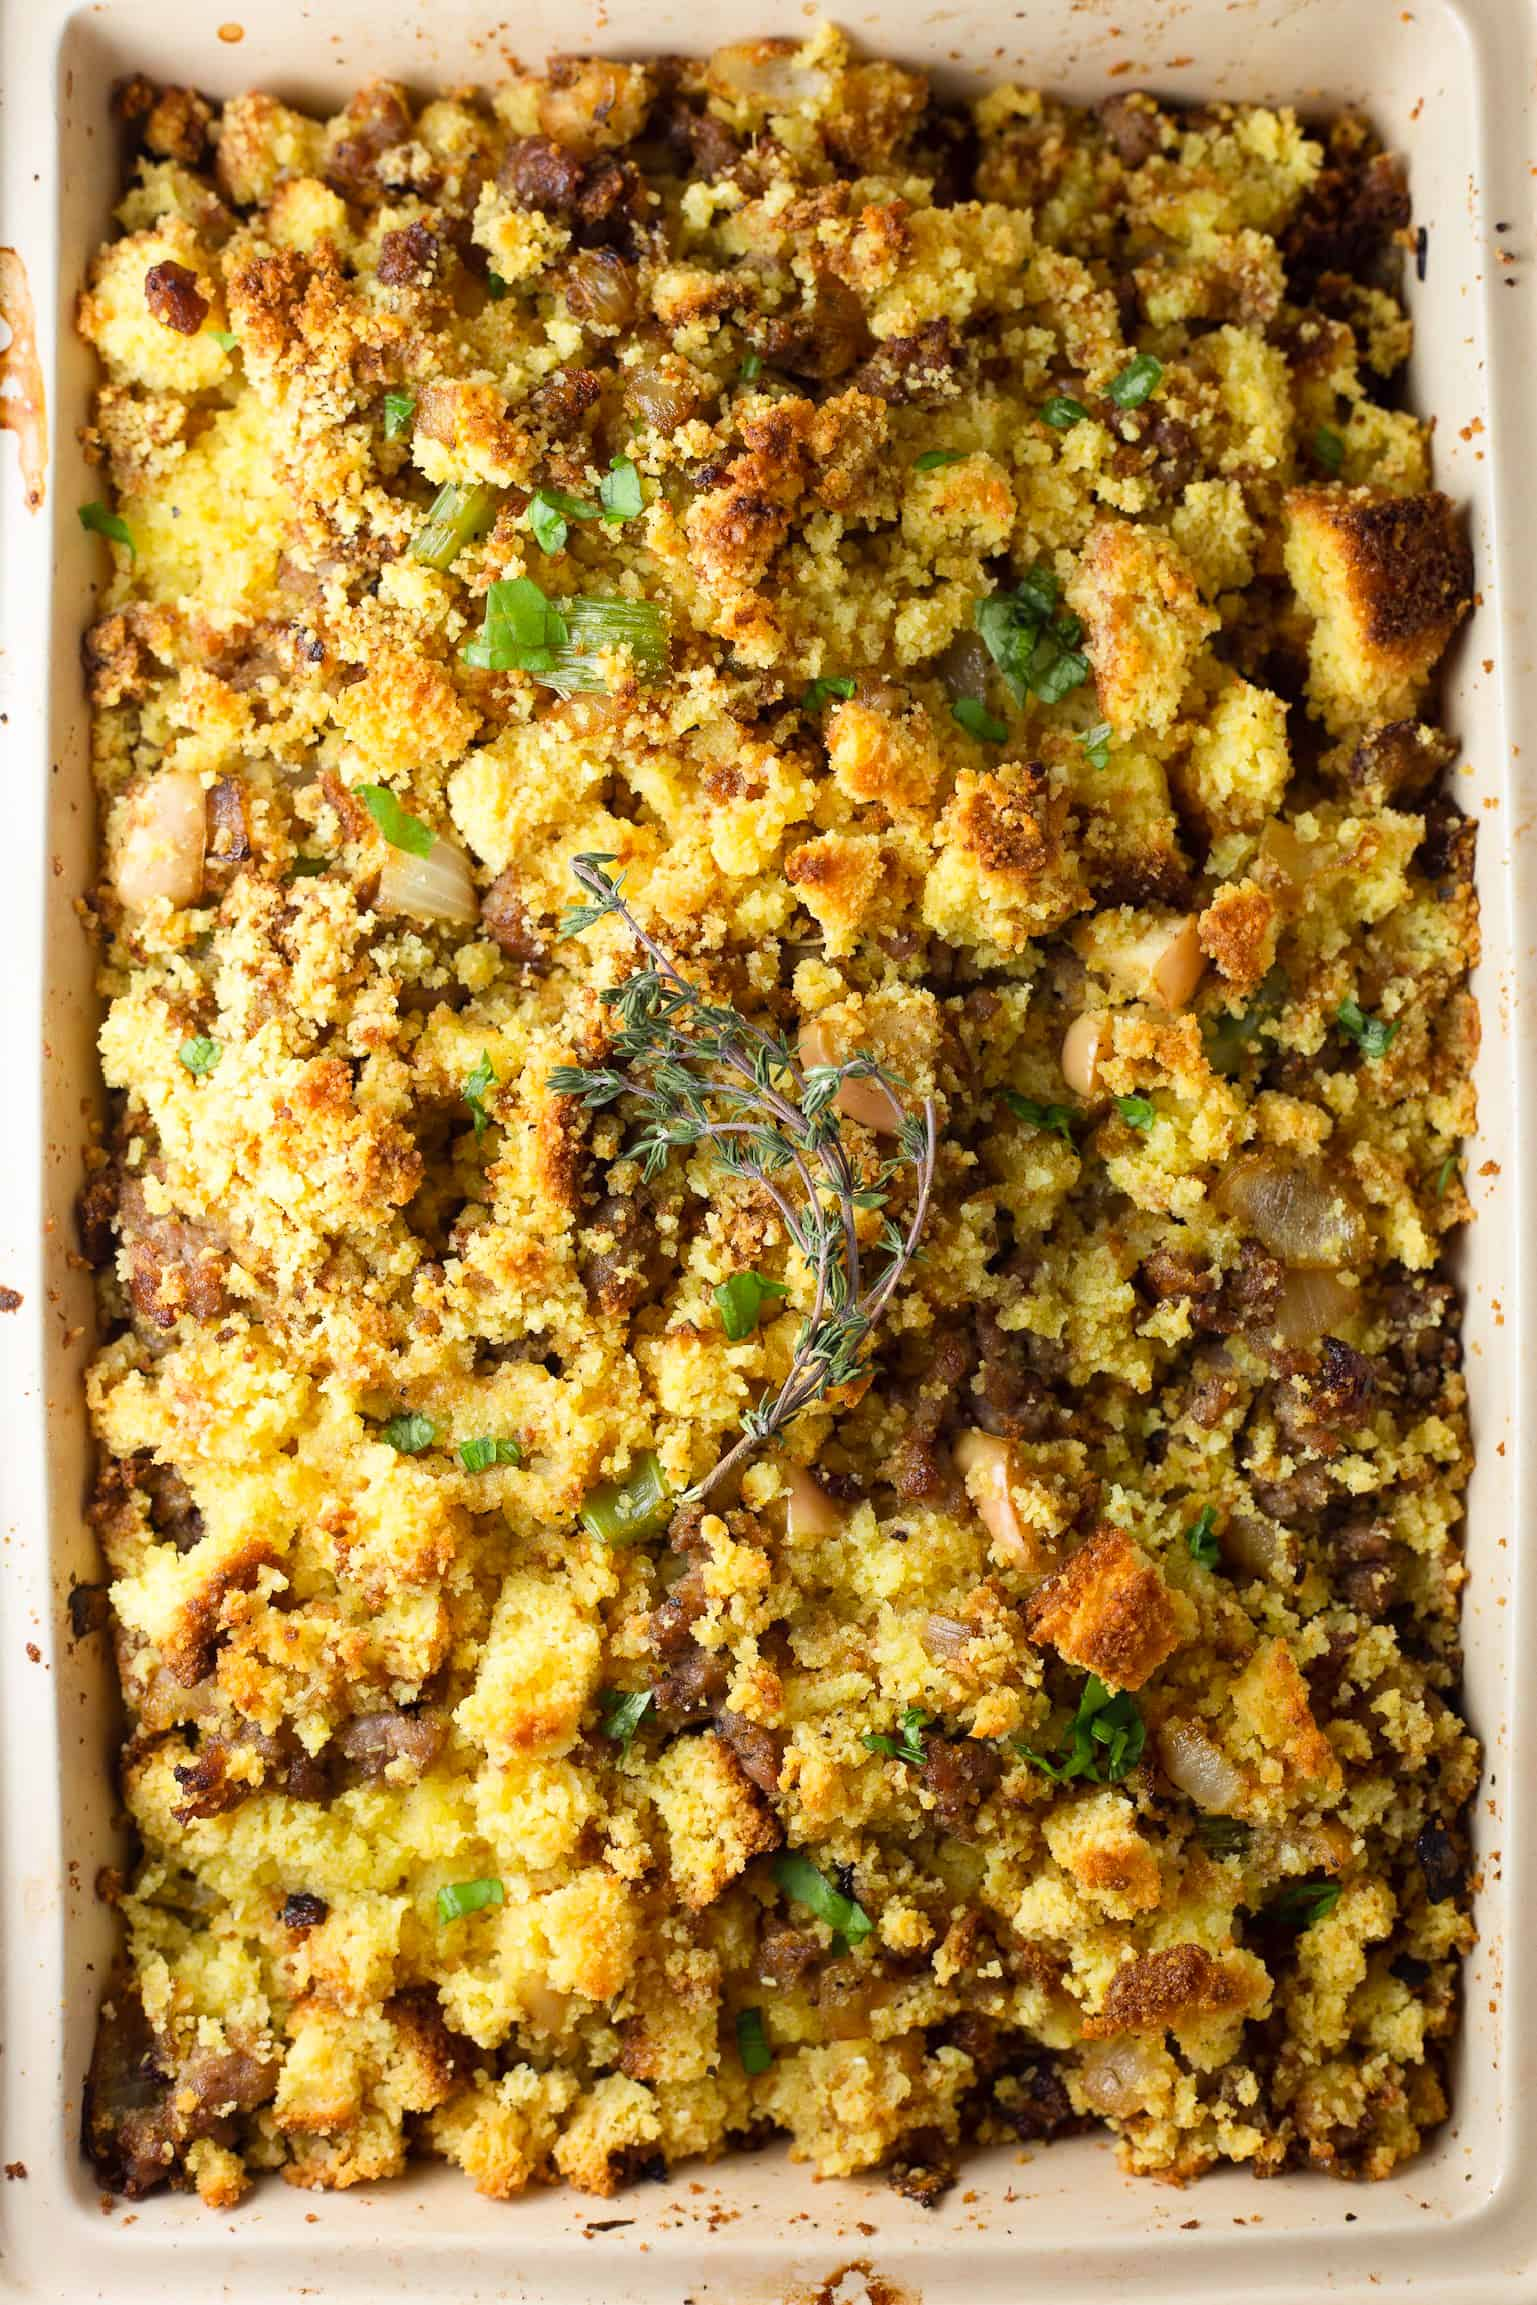 Baking dish with cornbread, sausage, apple, thyme and parsley